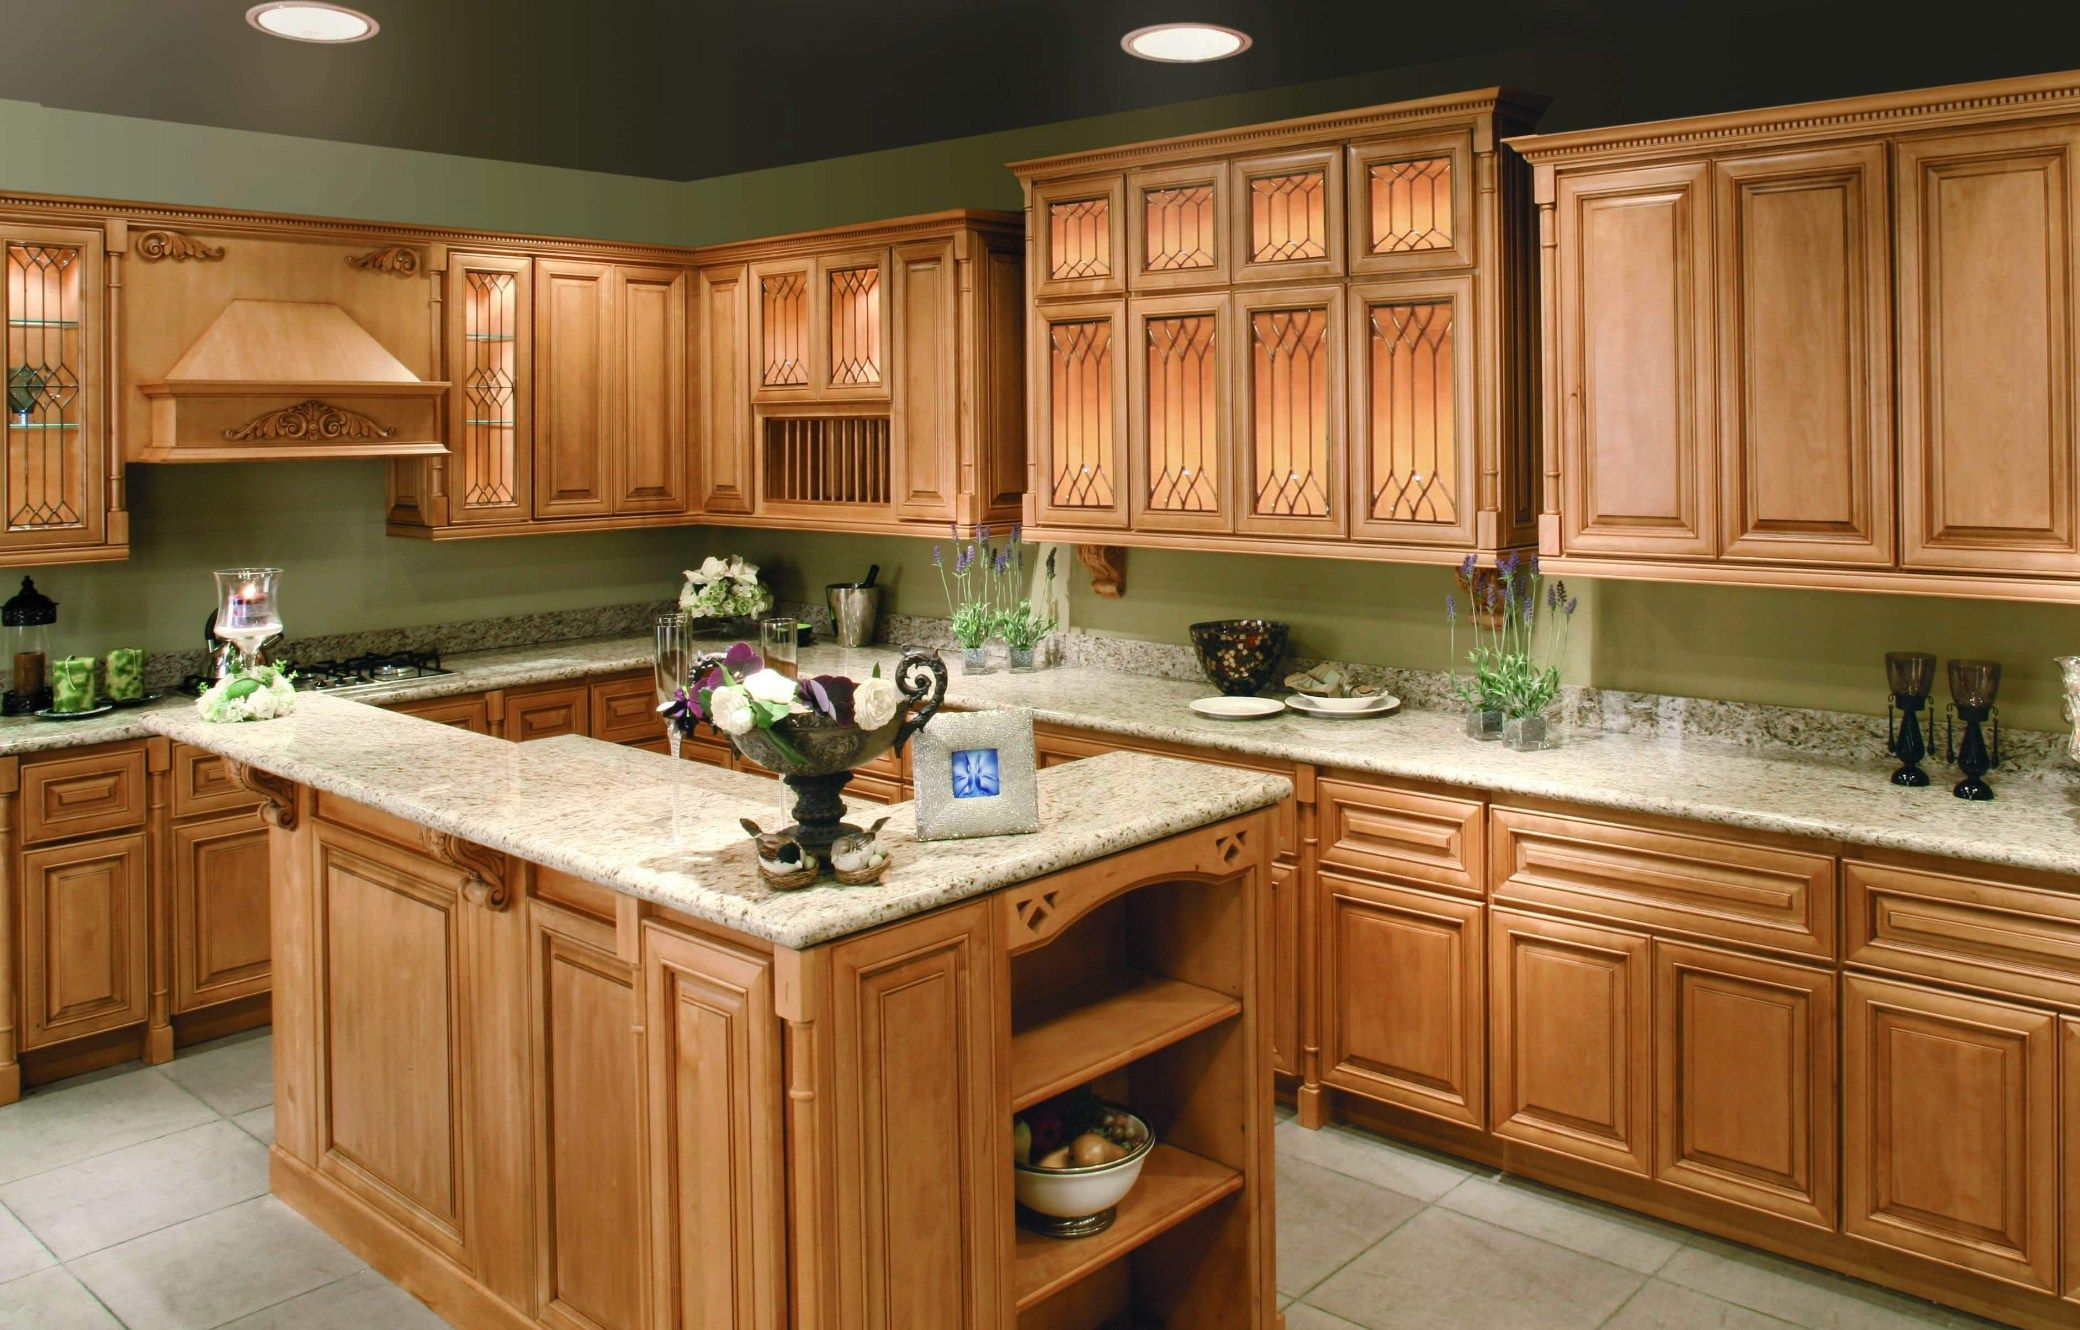 light kitchen cabinets Kitchen light brown wooden kitchen cabinet on the green wall plus white counter top and brown wooden wooden kitchen island with white counter top and